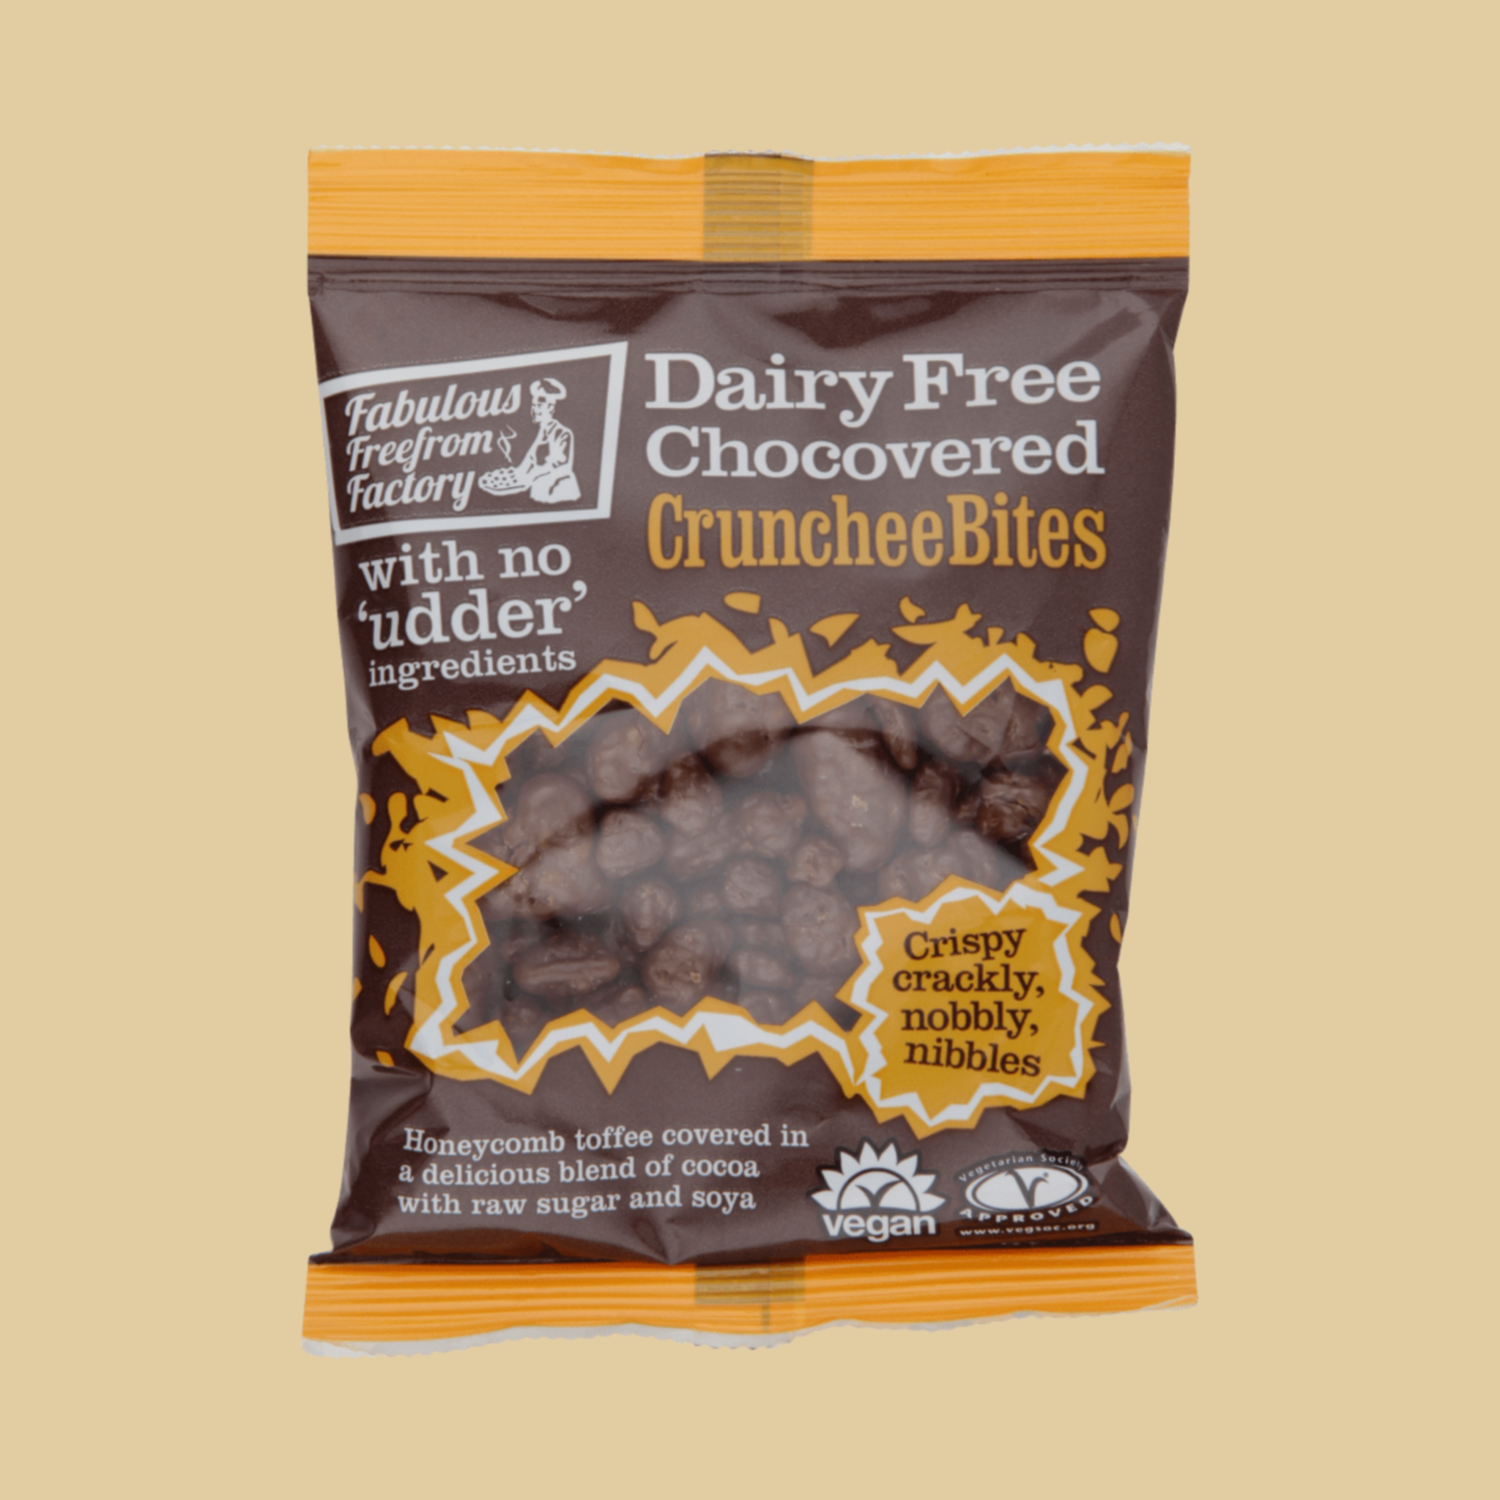 Fabulous Freefrom Factory: Crunchee Bites